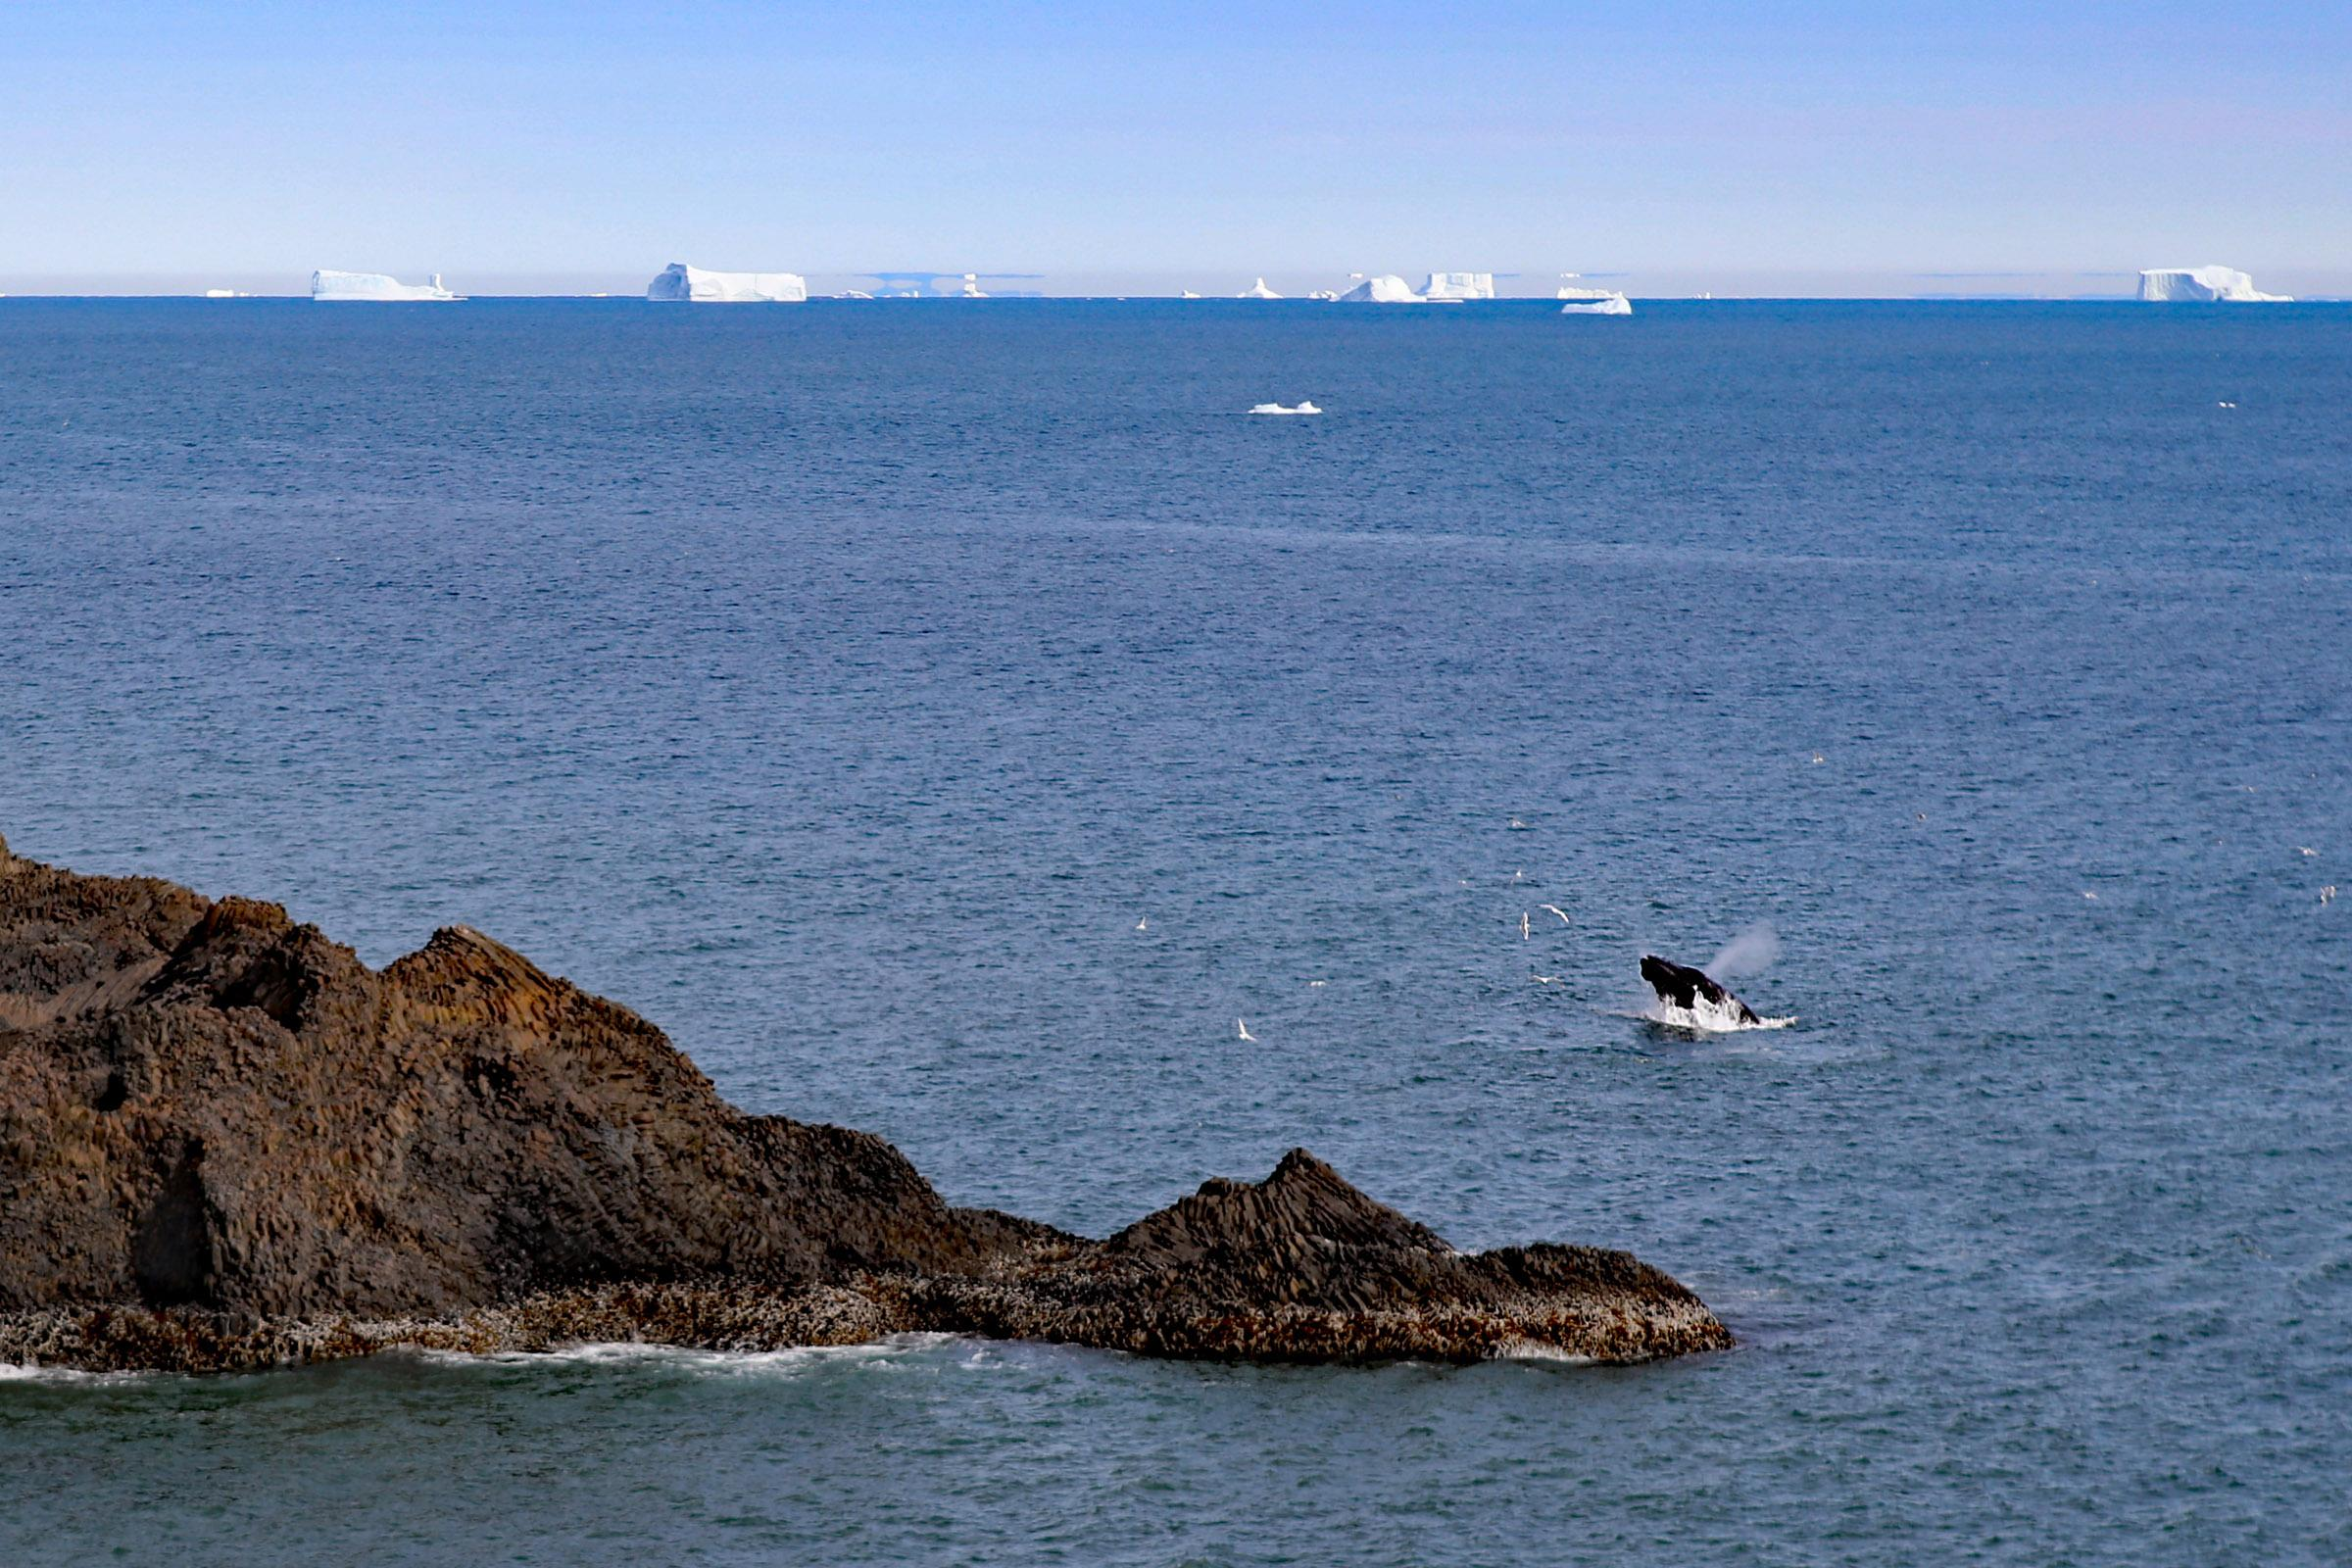 Whale watching from the shore in Qeqertarsuaq Greenland. Photo by Jurga Rubinovaite. Visit Greenland